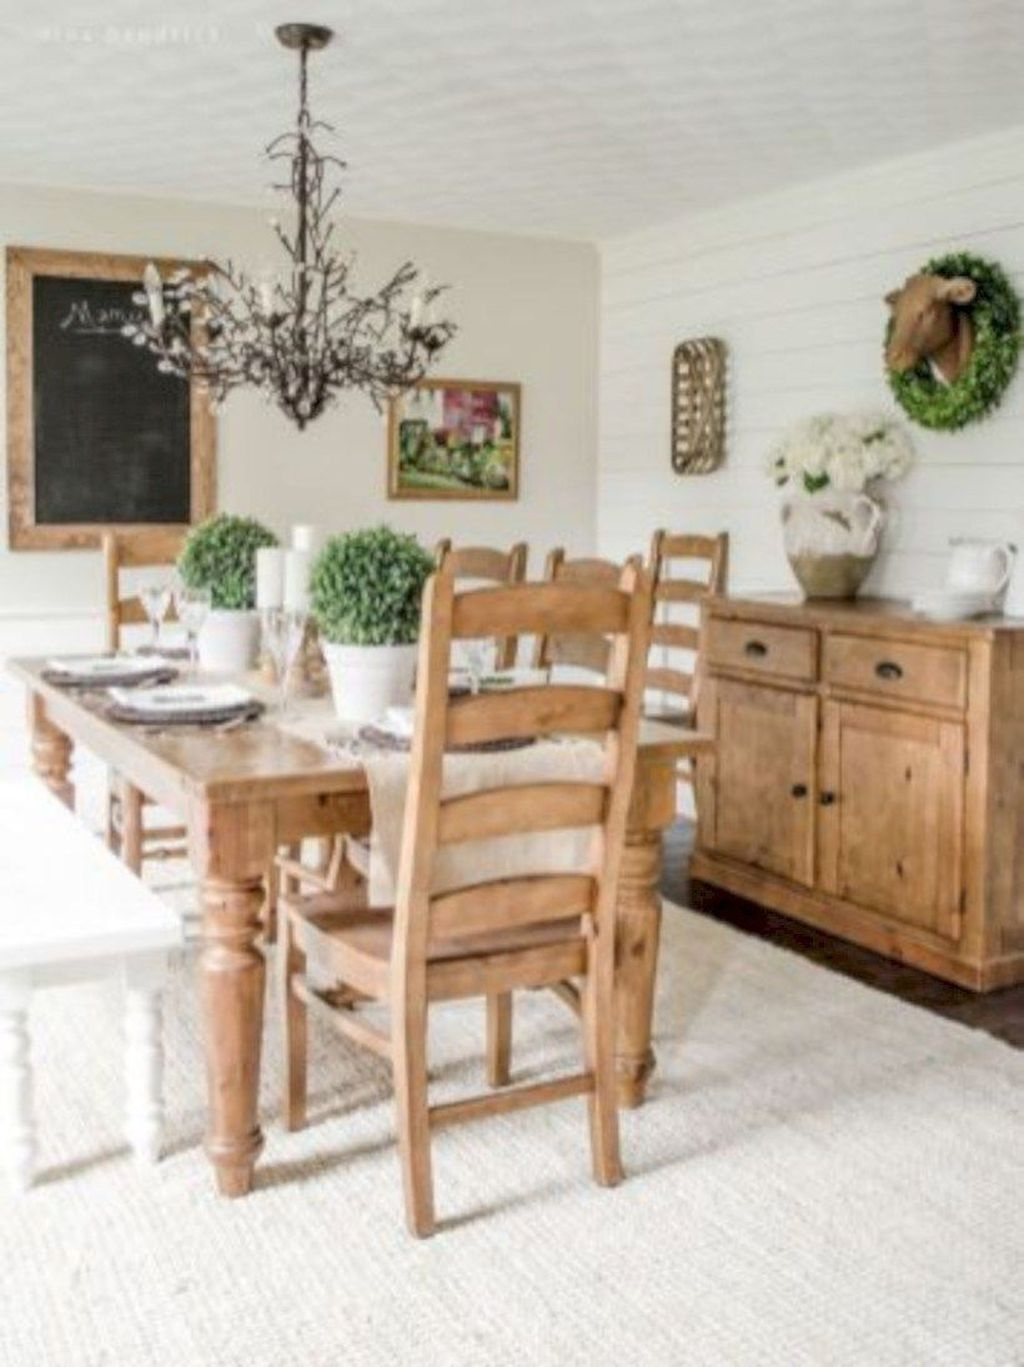 Popular Farmhouse Dining Room Design Ideas Trend 2019 02